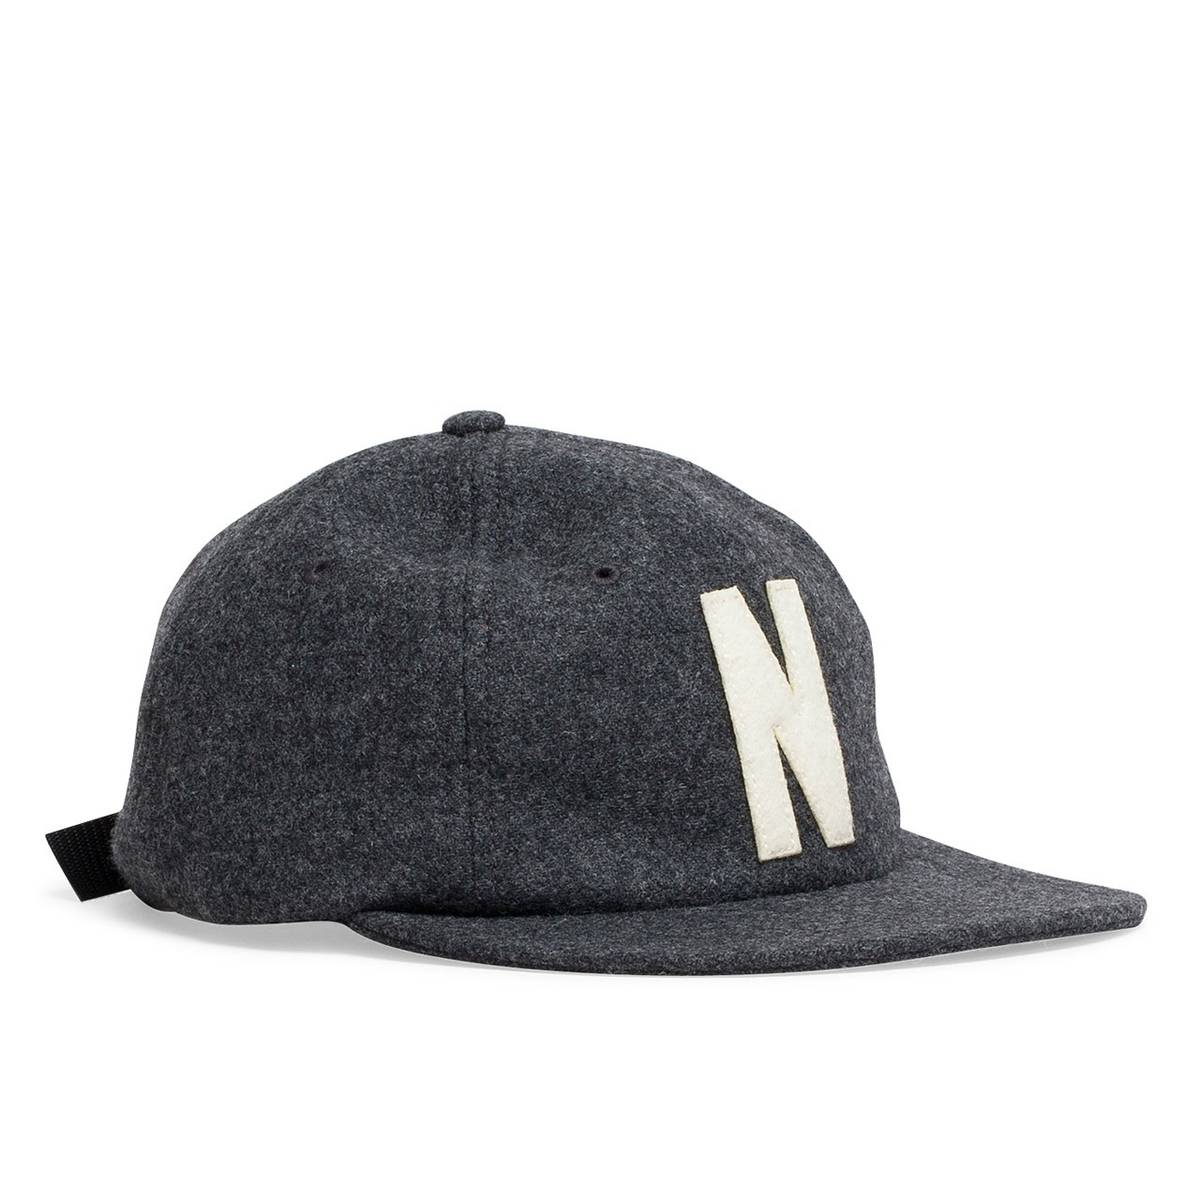 85ed5aec552 Norse Projects 6 Panel N Wool Flat Cap Charcoal Melange